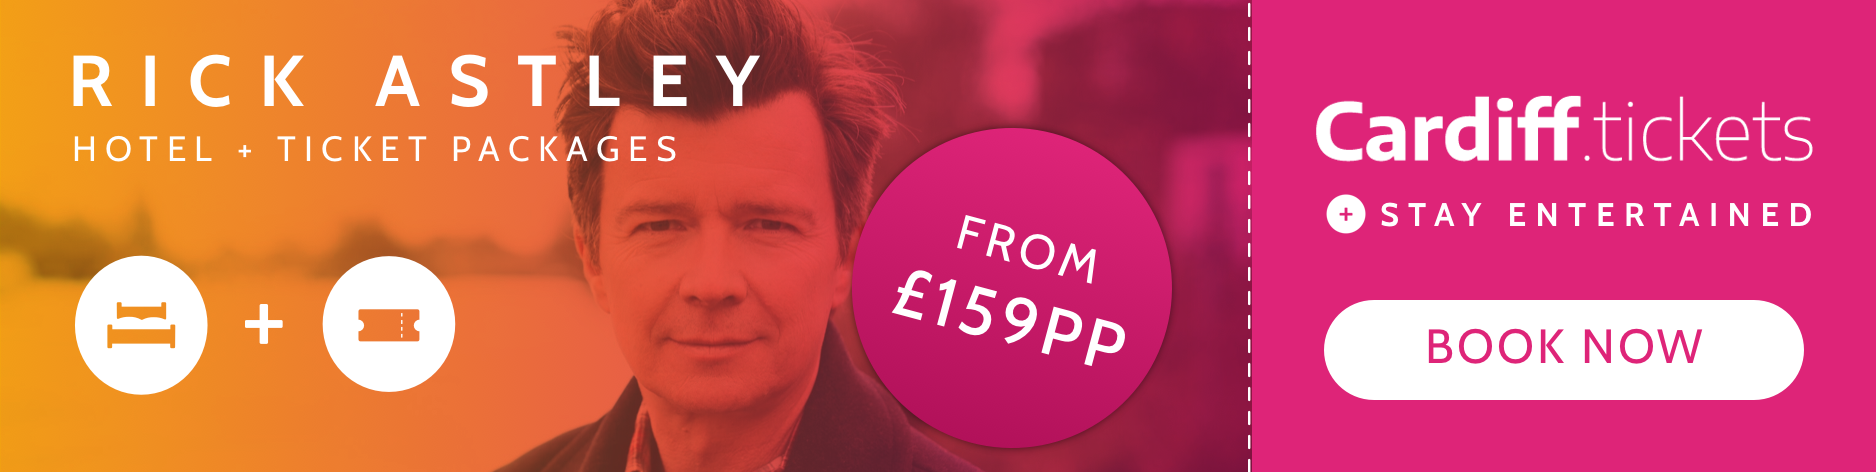 Rick Astley tickets and hotel package